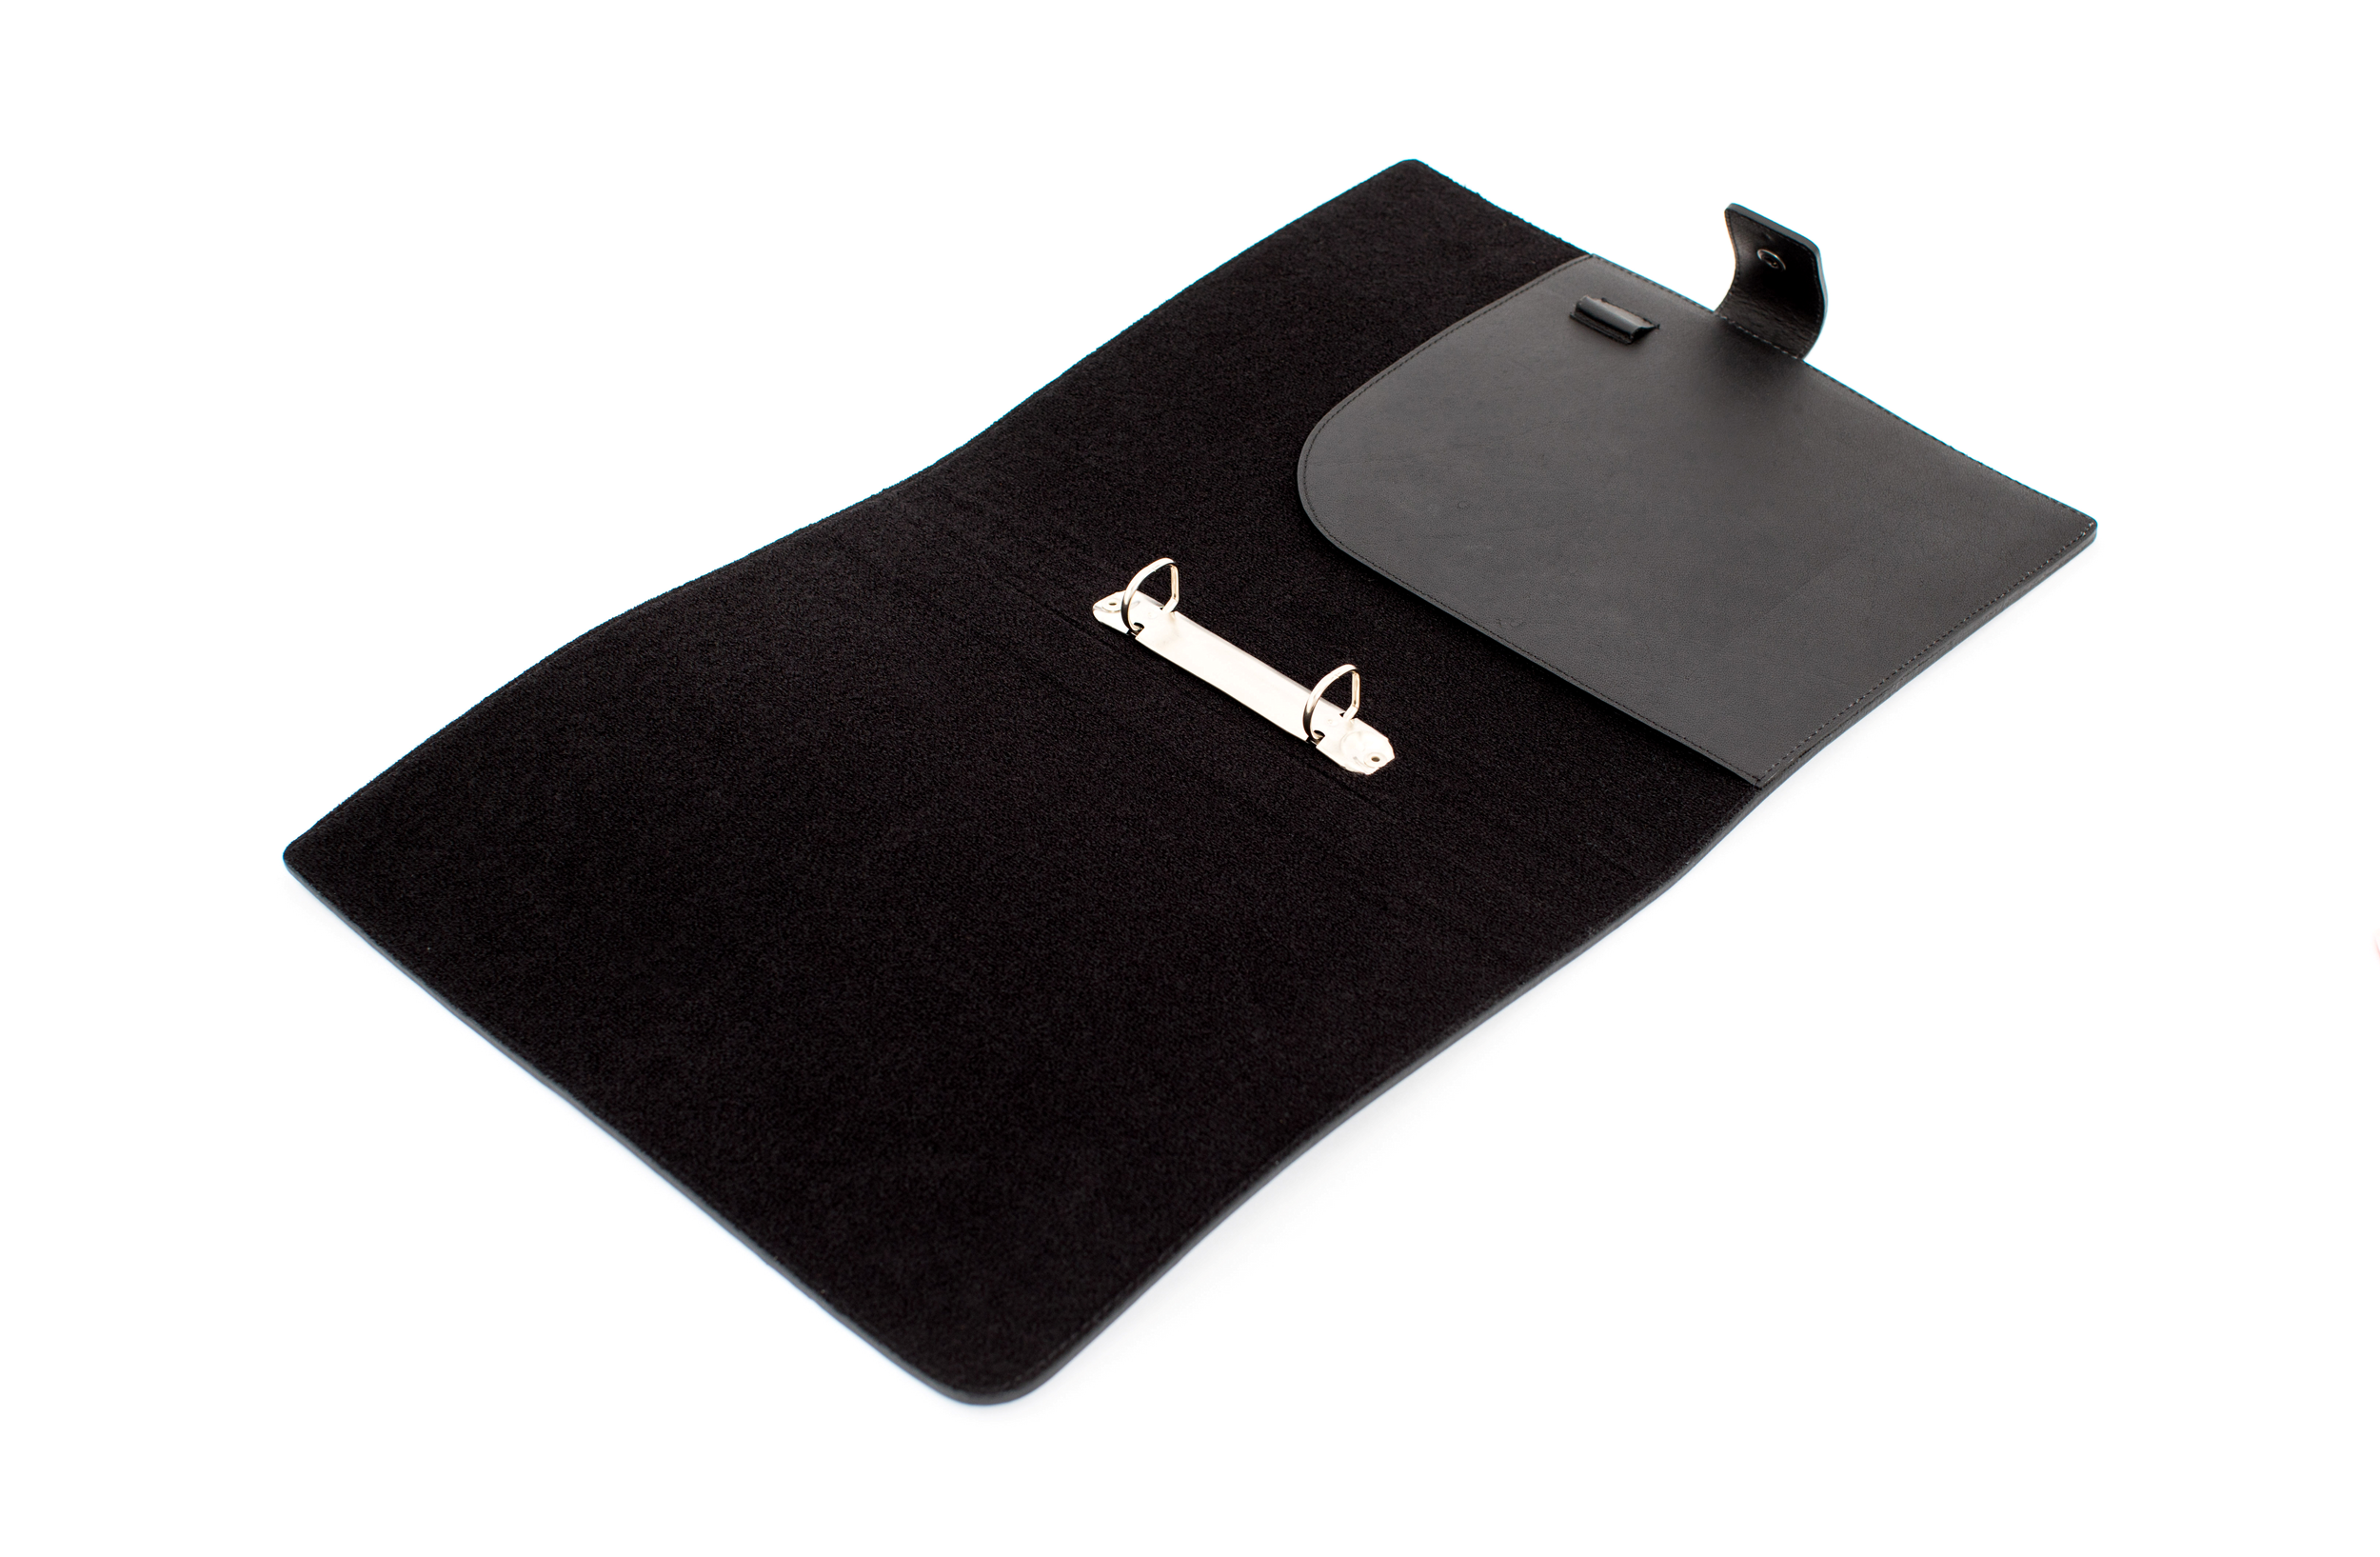 HANDSTATT Leather case 'business' for iPads/Tablets black